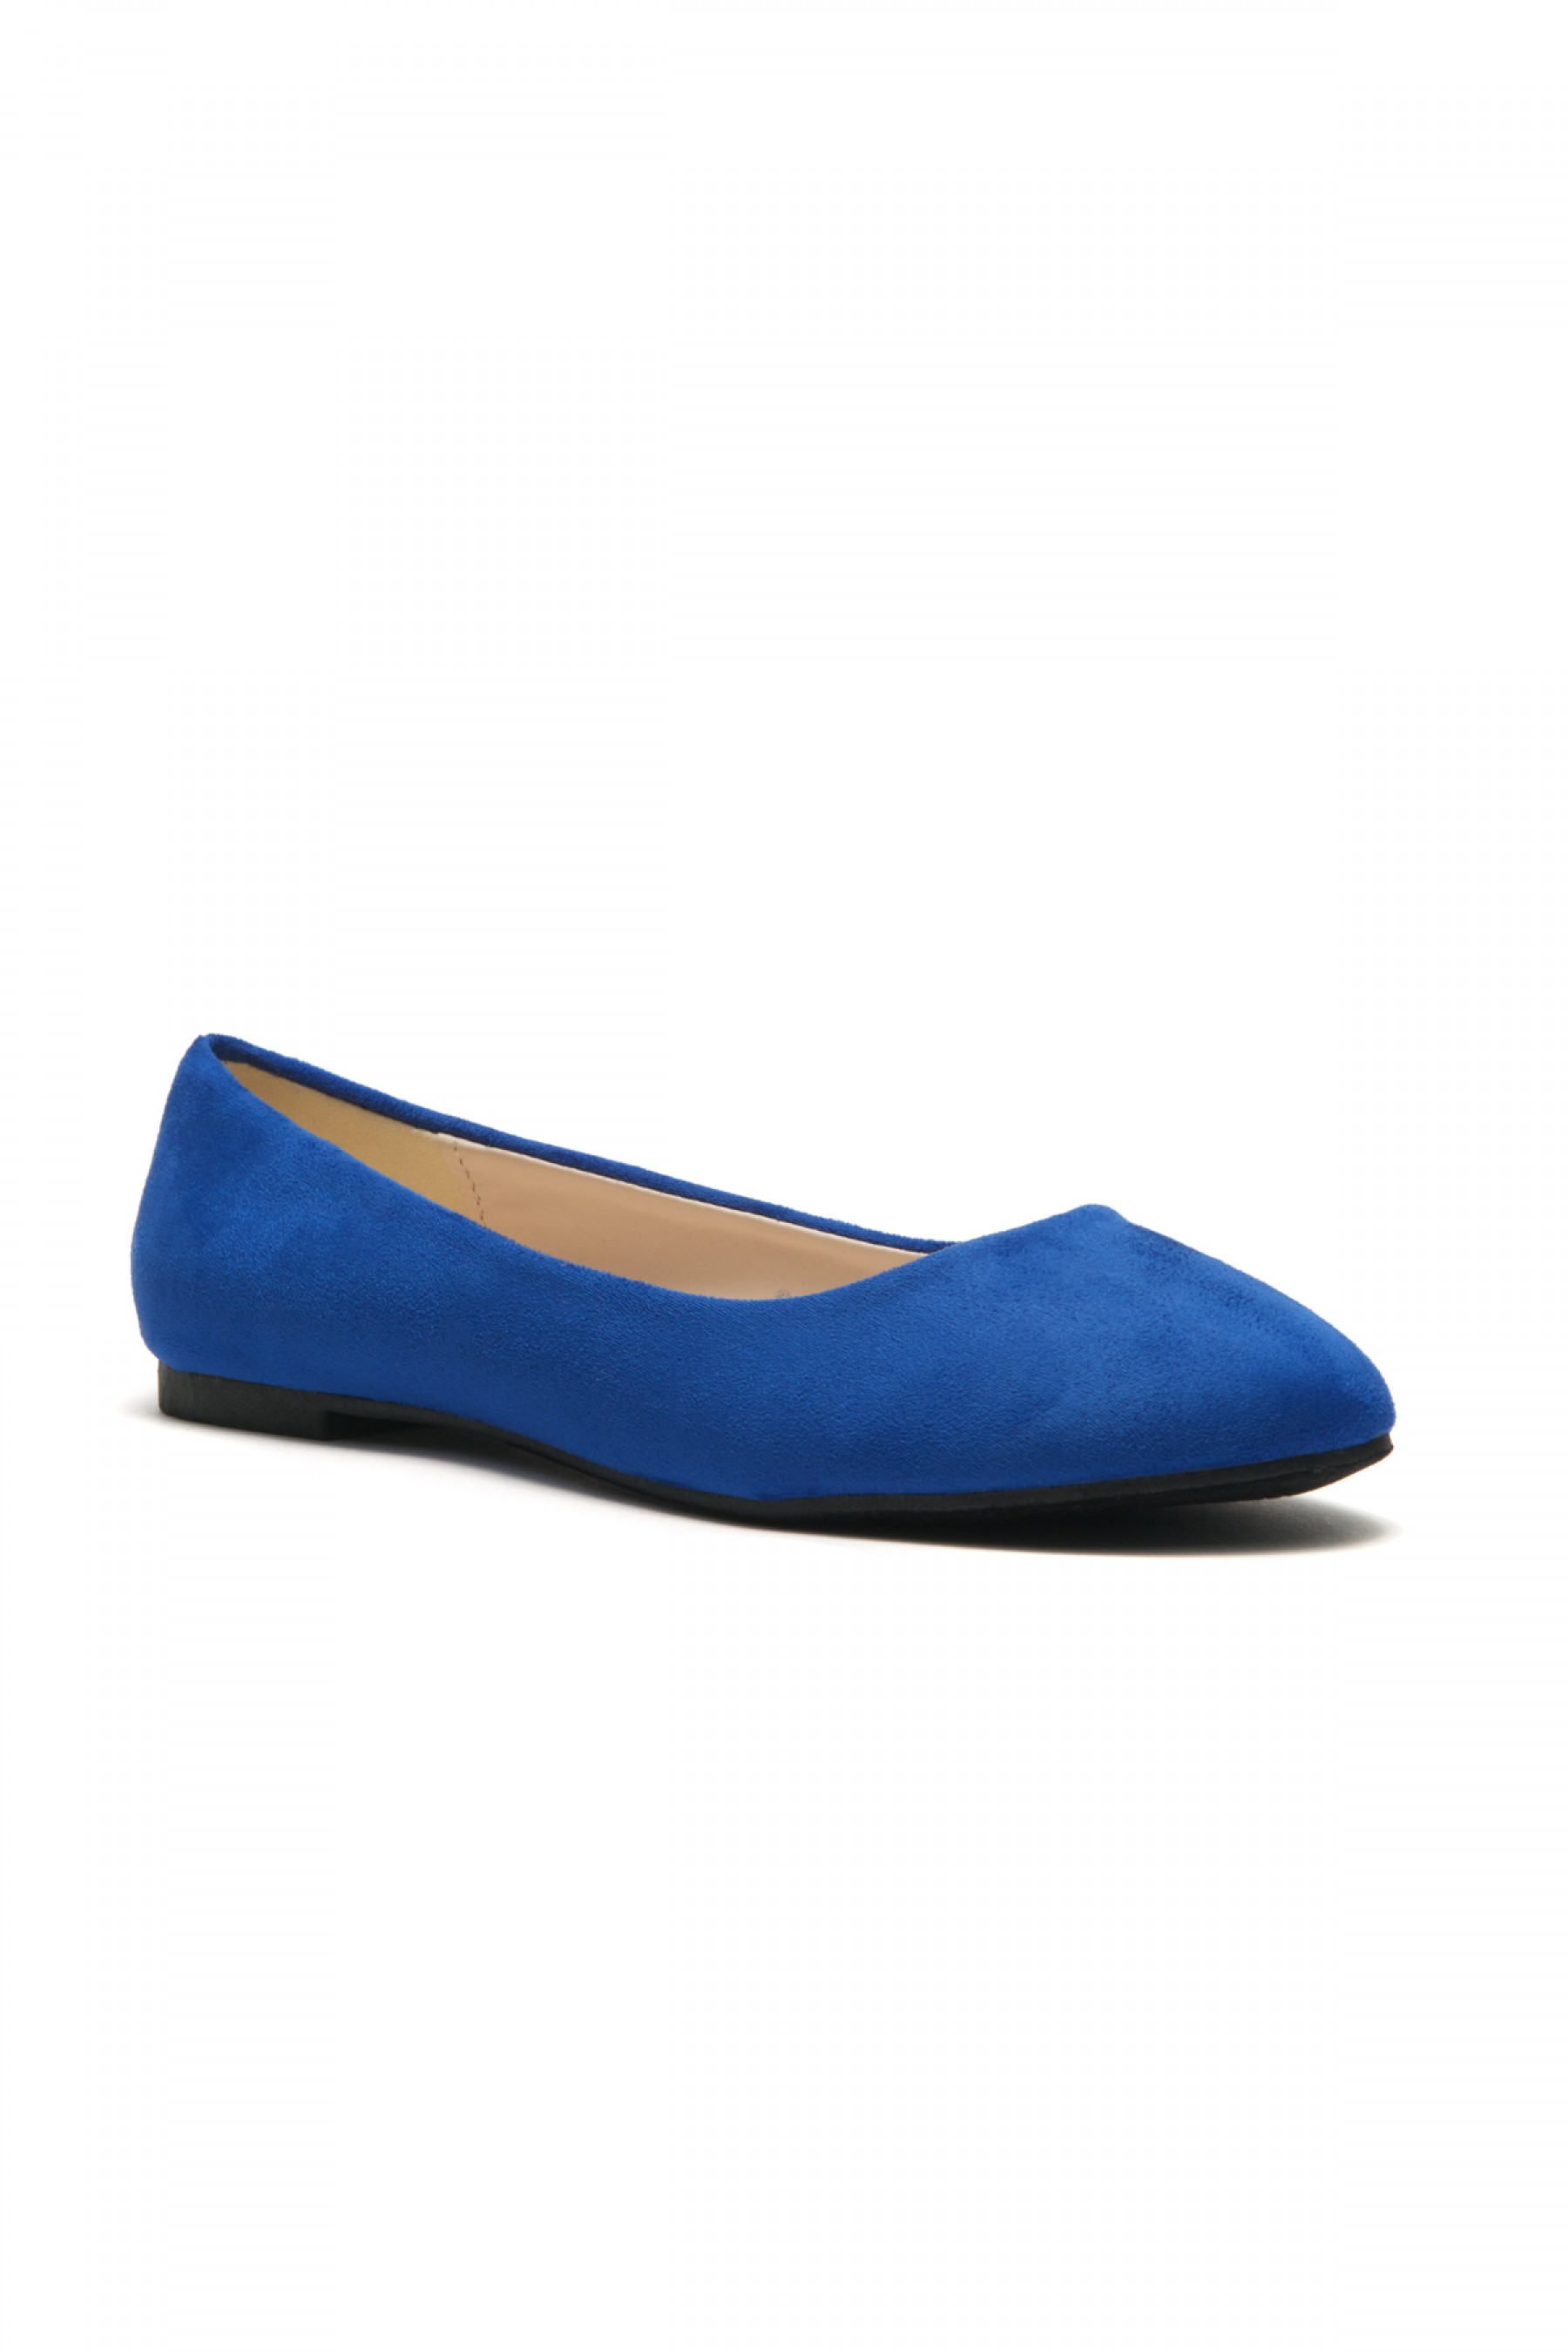 HerStyle Women's Manmade Sammba Colorful Ballet Flat (Royal Blue)